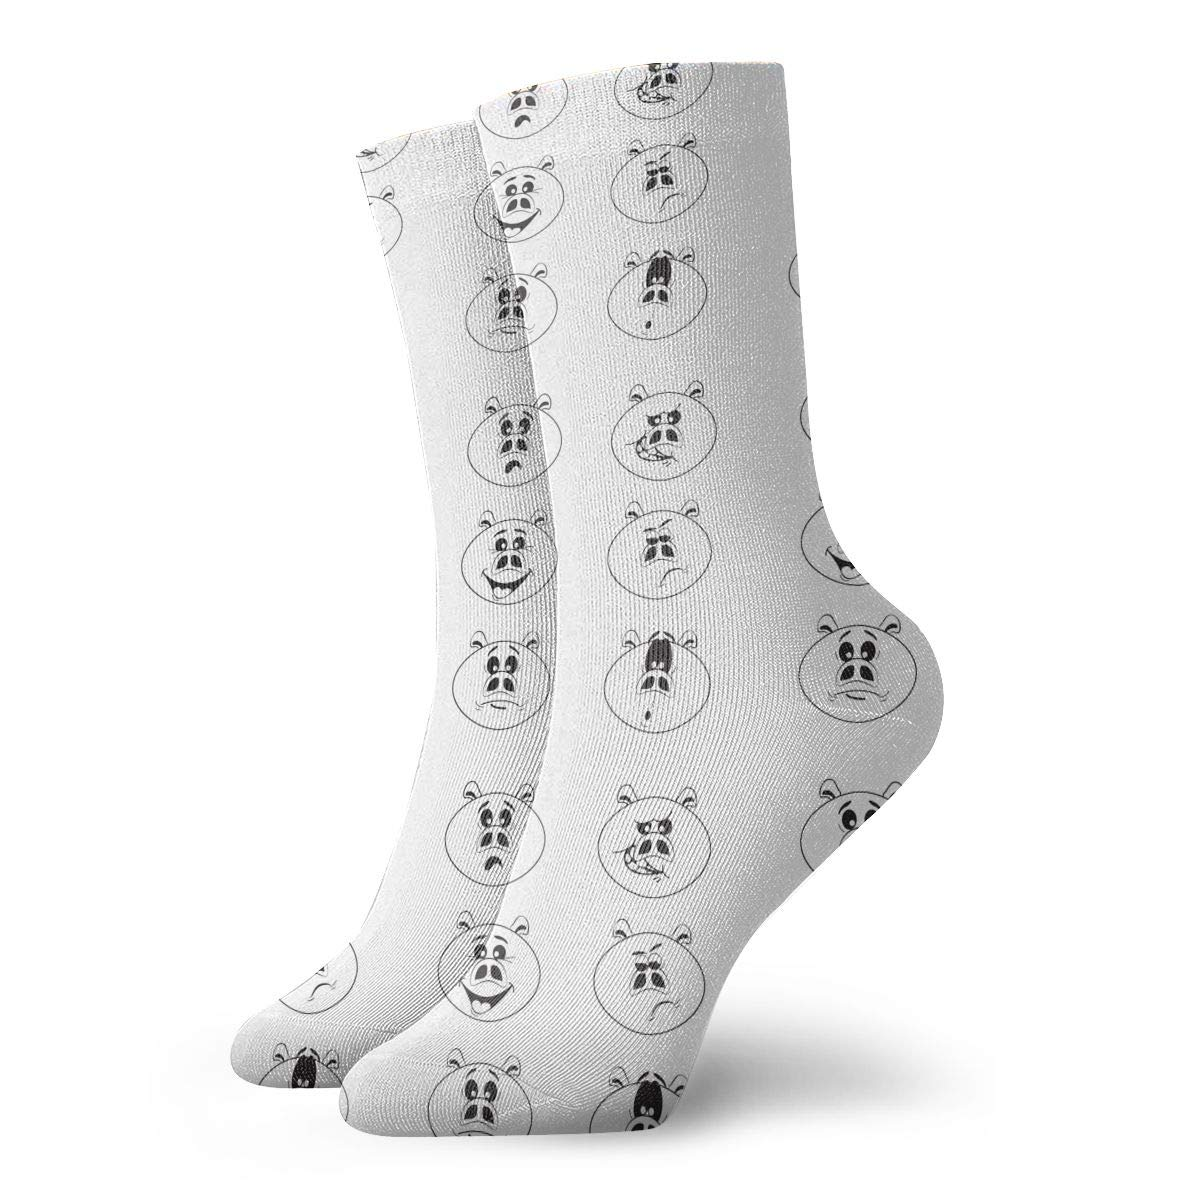 Unisex Funny Pigs Athletic Quarter Ankle Print Breathable Hiking Running Socks